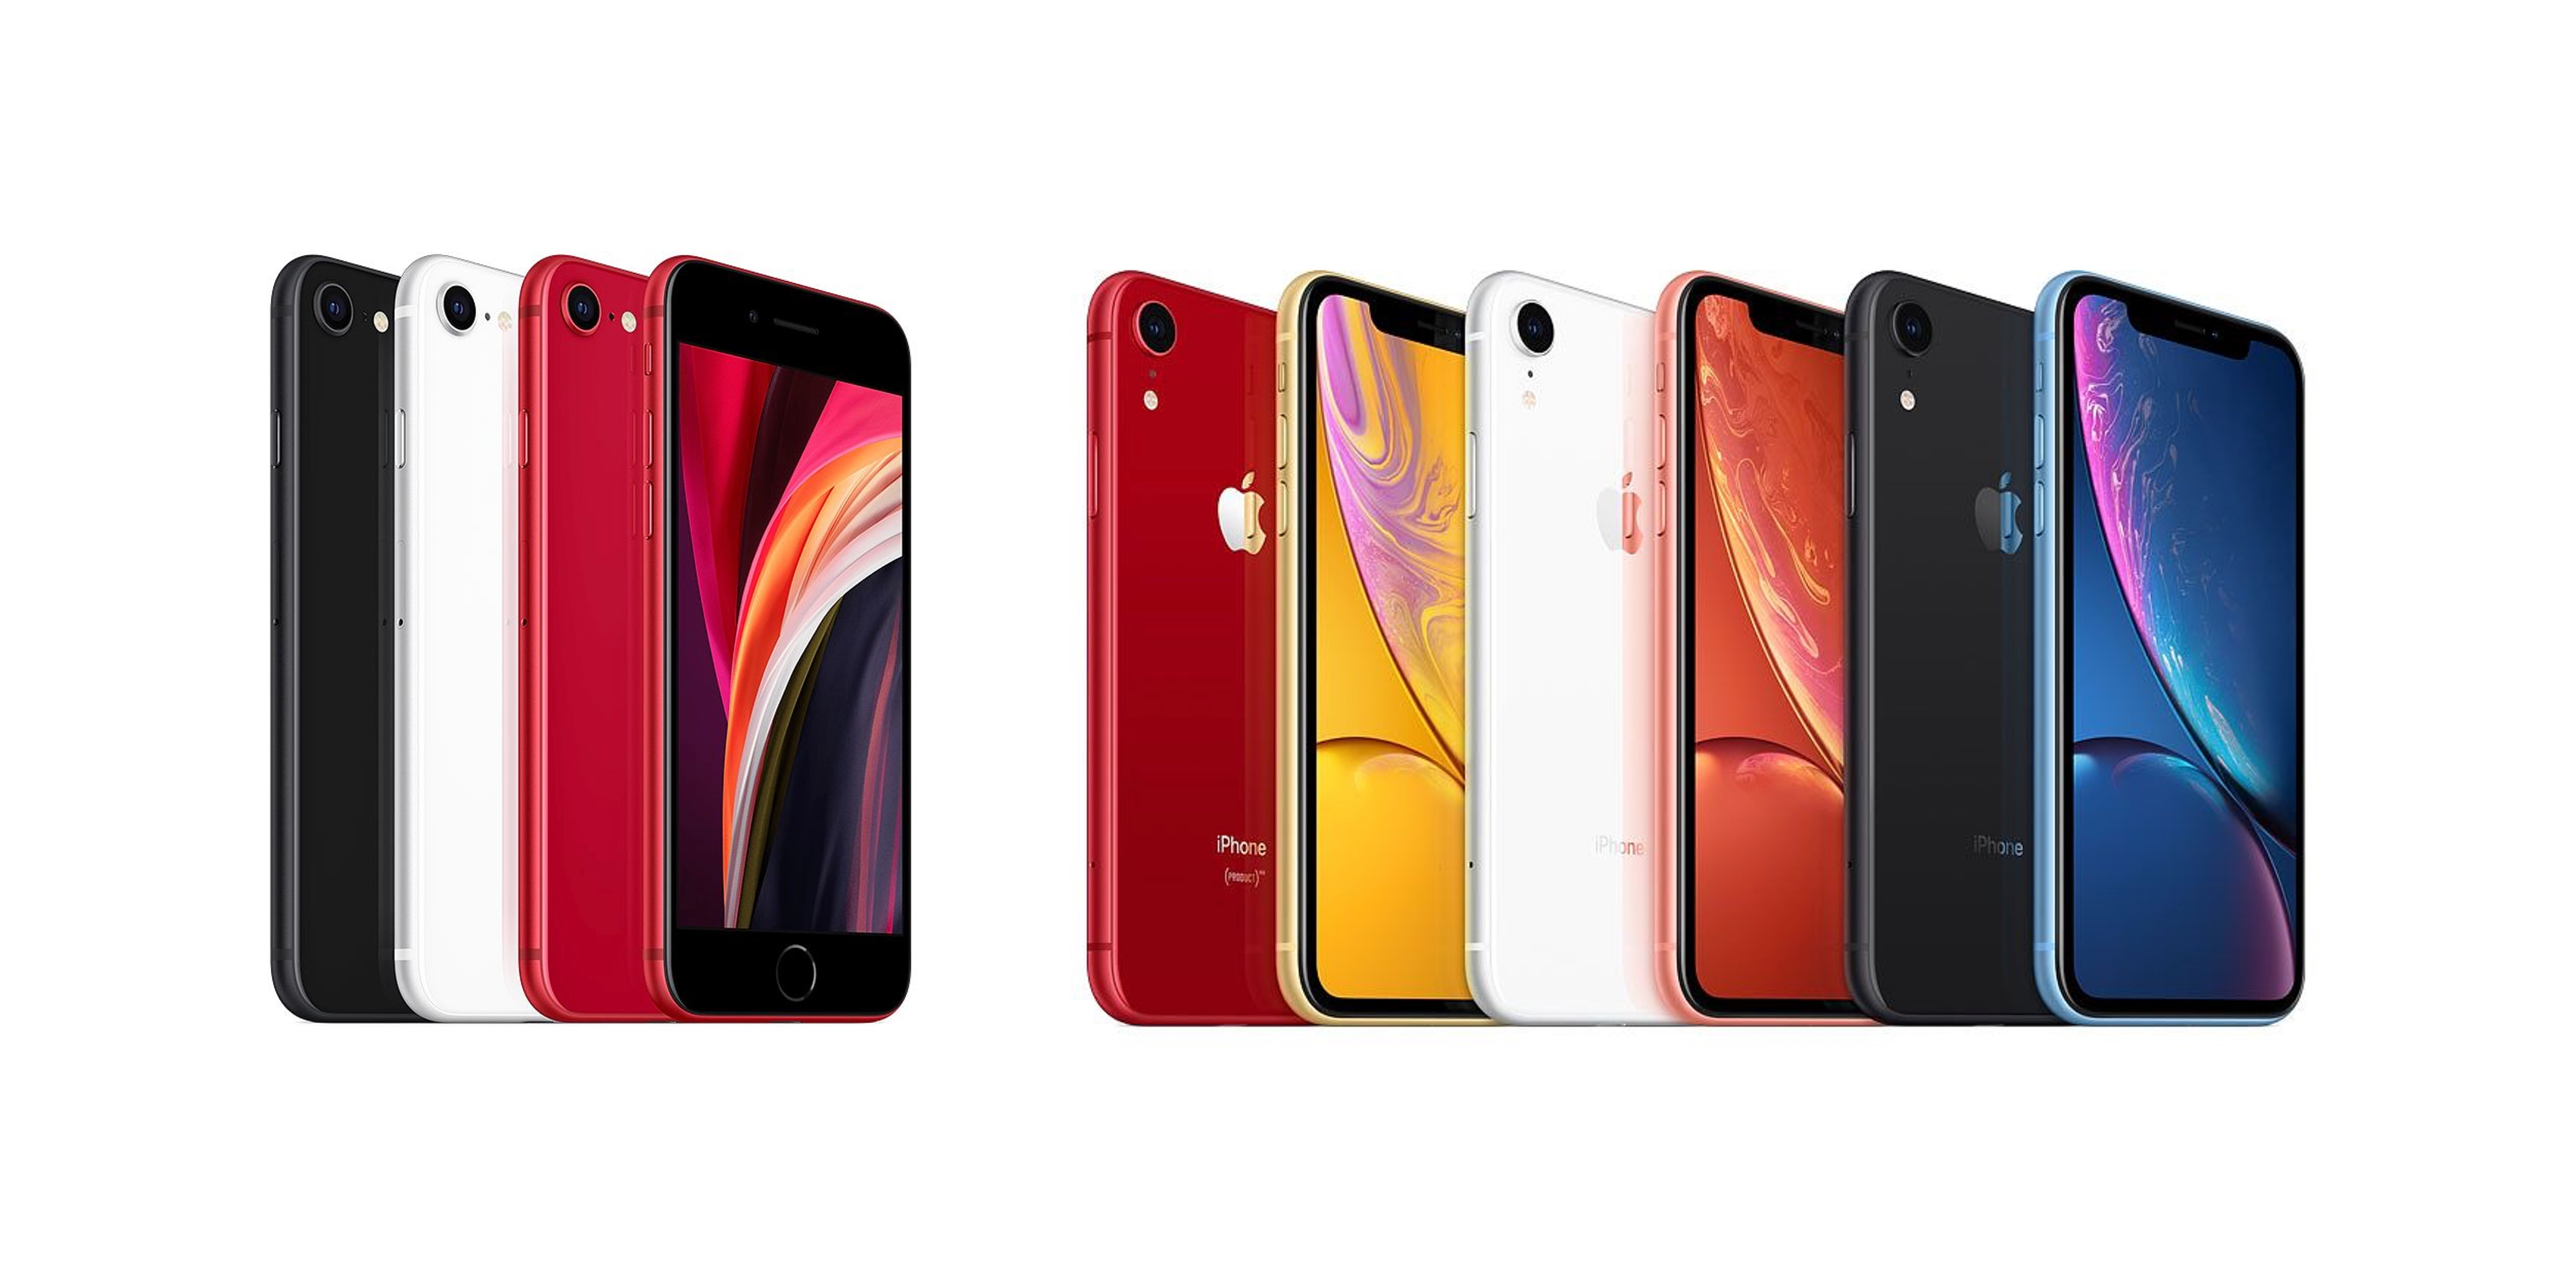 Iphone Se Vs Iphone Xr Comparison Which Should You Buy 9to5mac